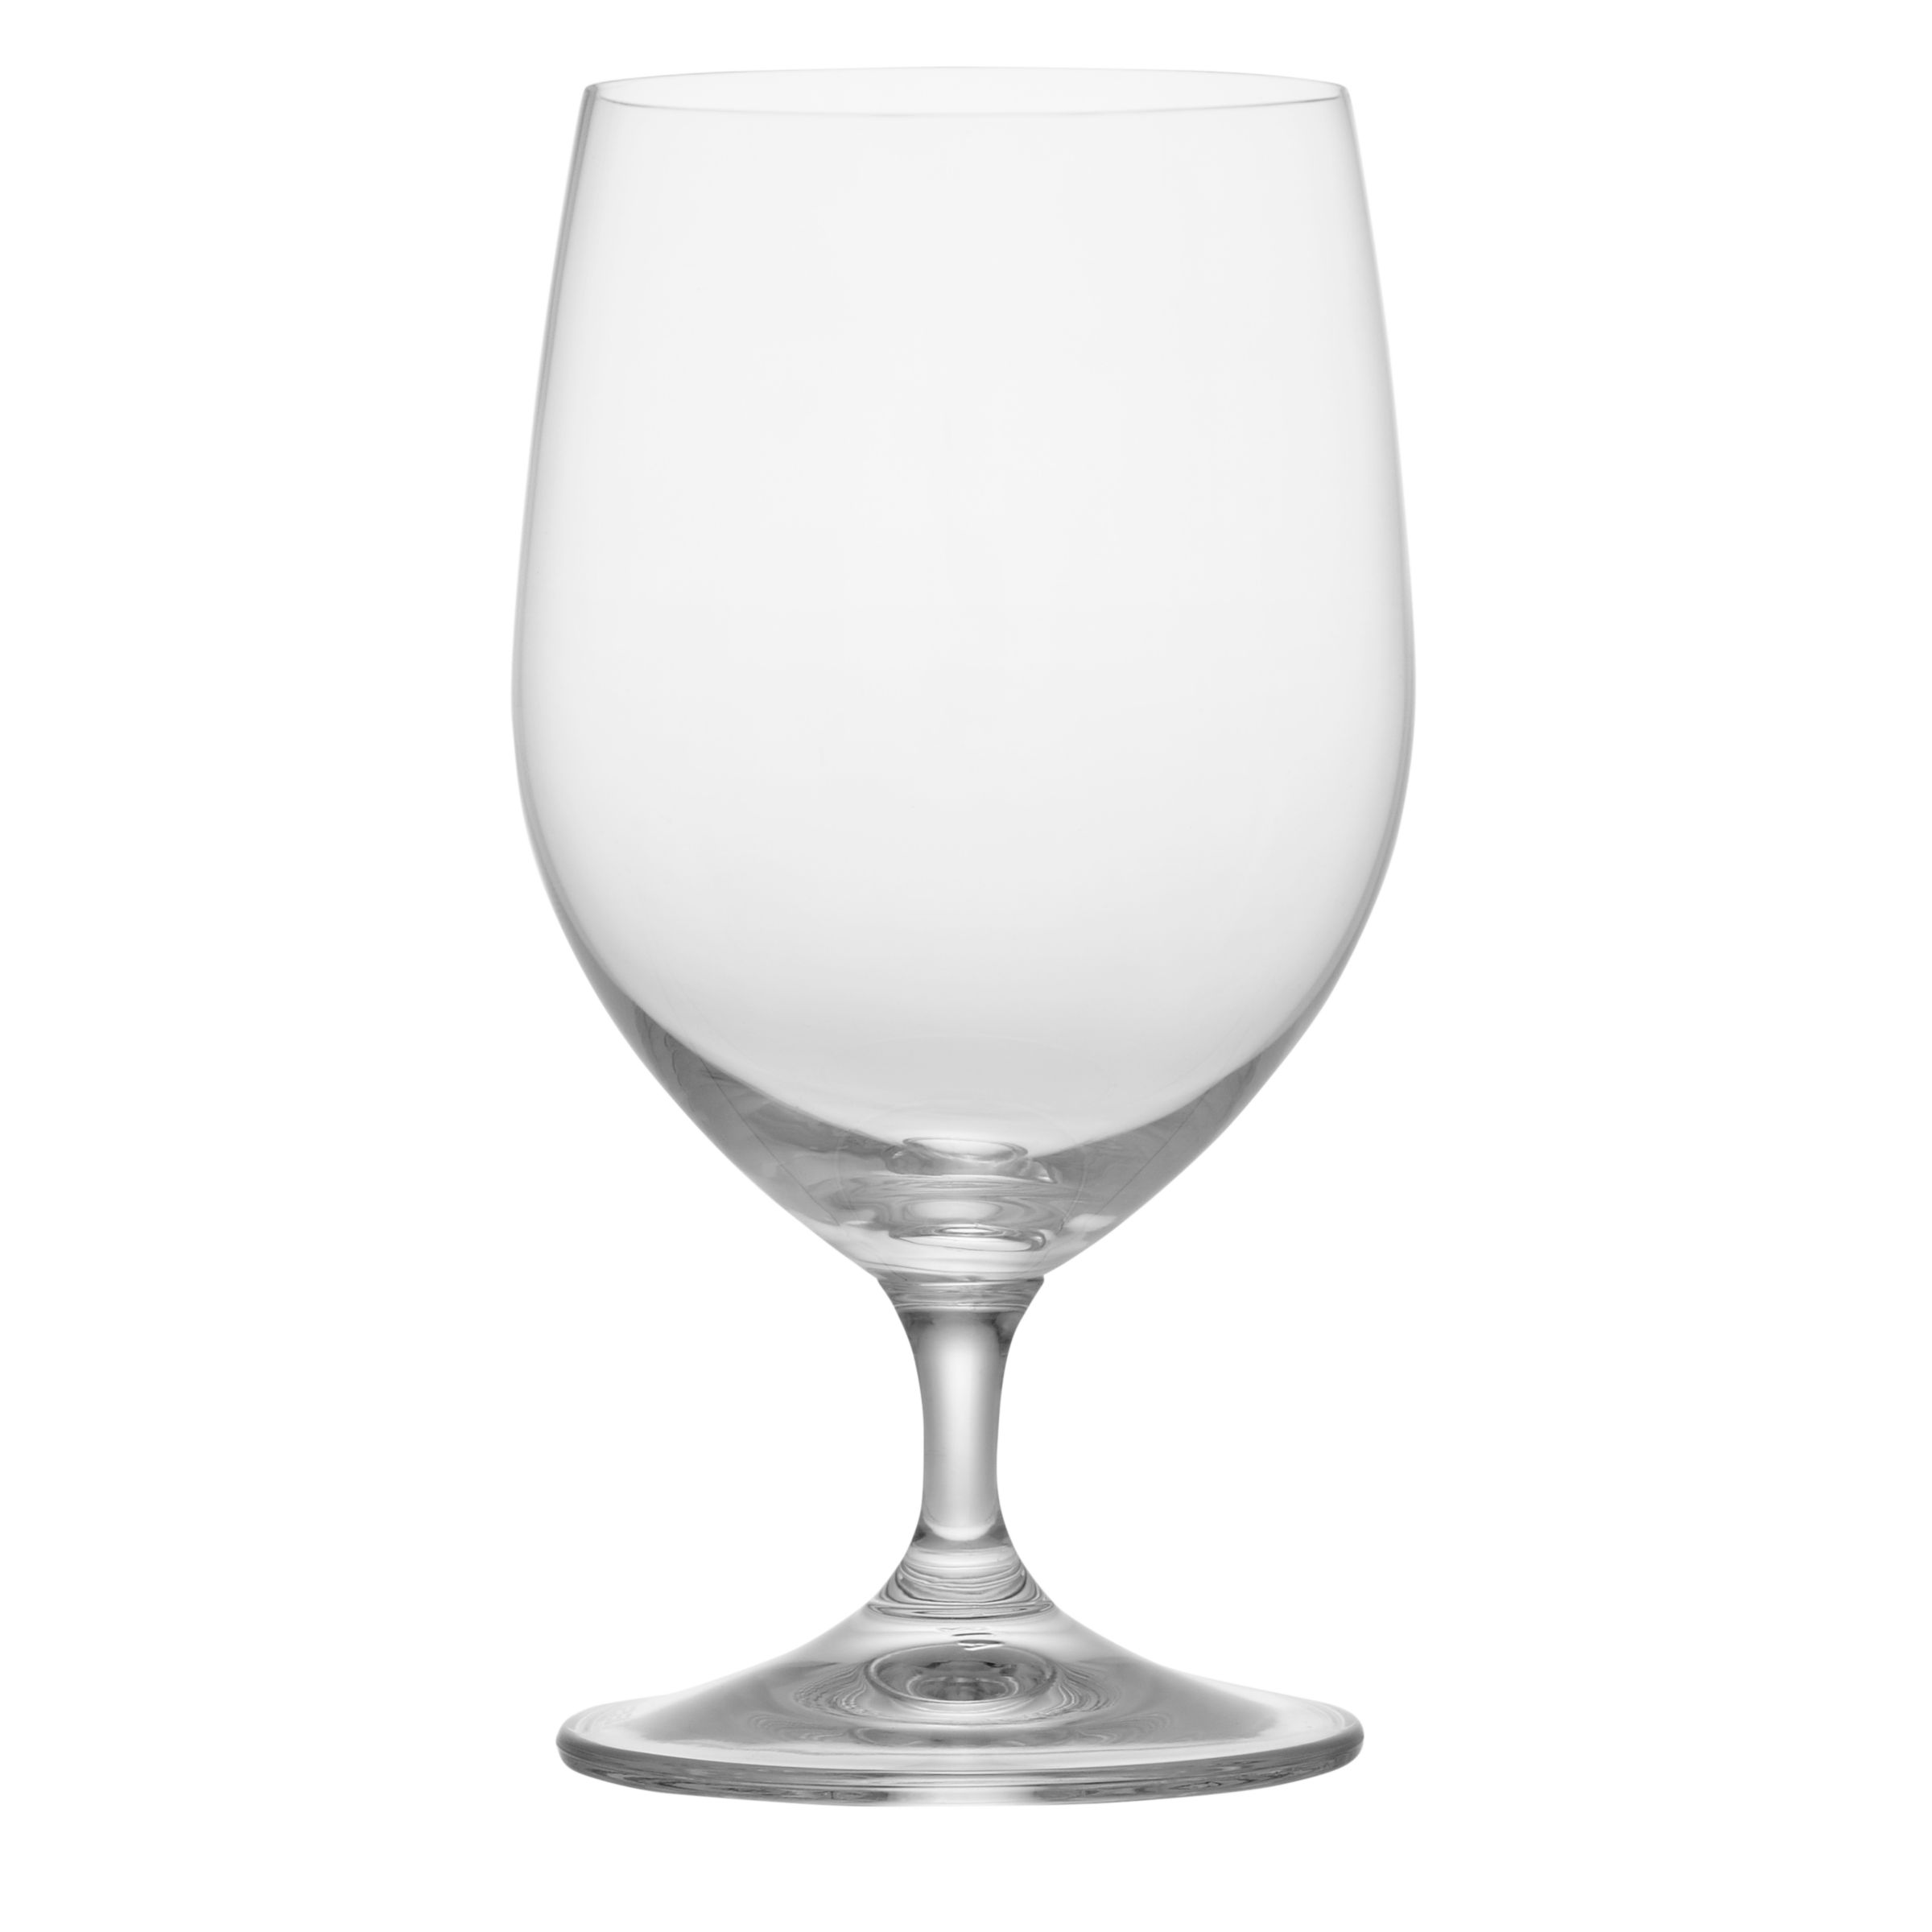 Riedel Riedel Vinum Water Glass, Set of 2, Clear